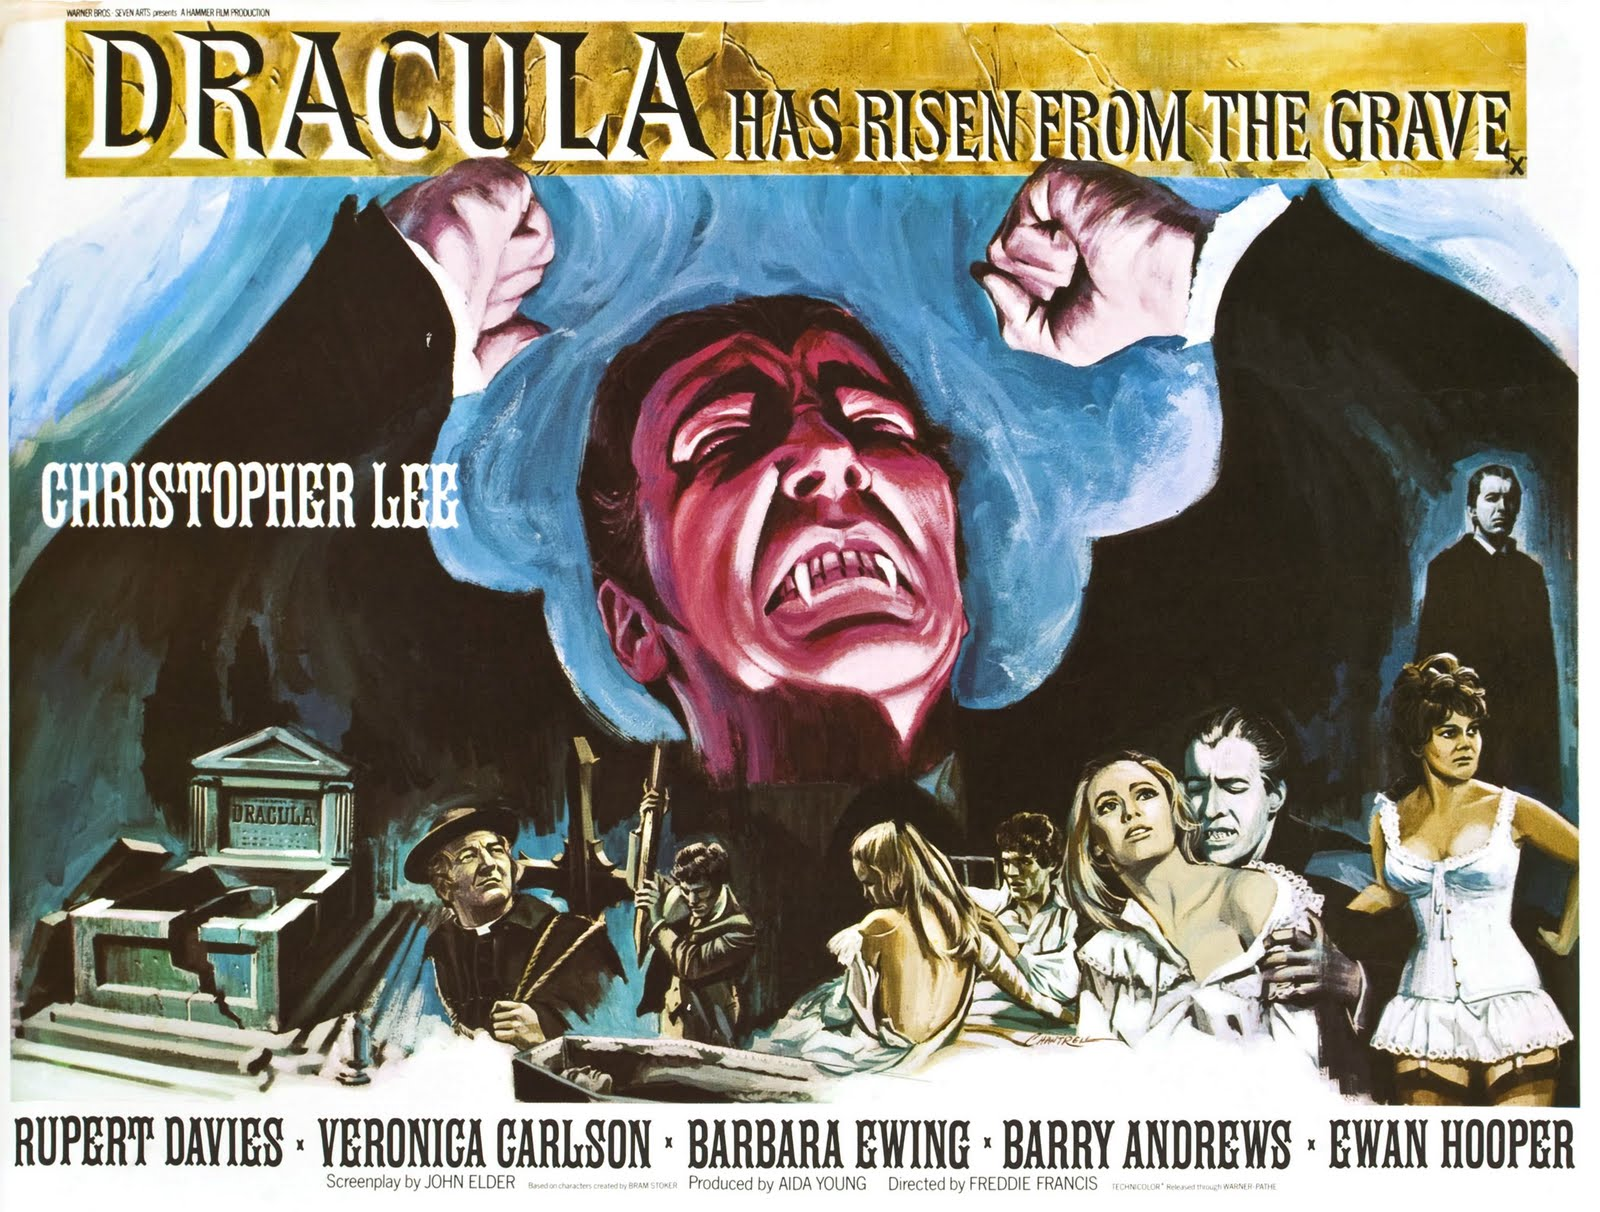 Christopher Lee in the Movie: Dracula Has Risen from the Grave, 1968